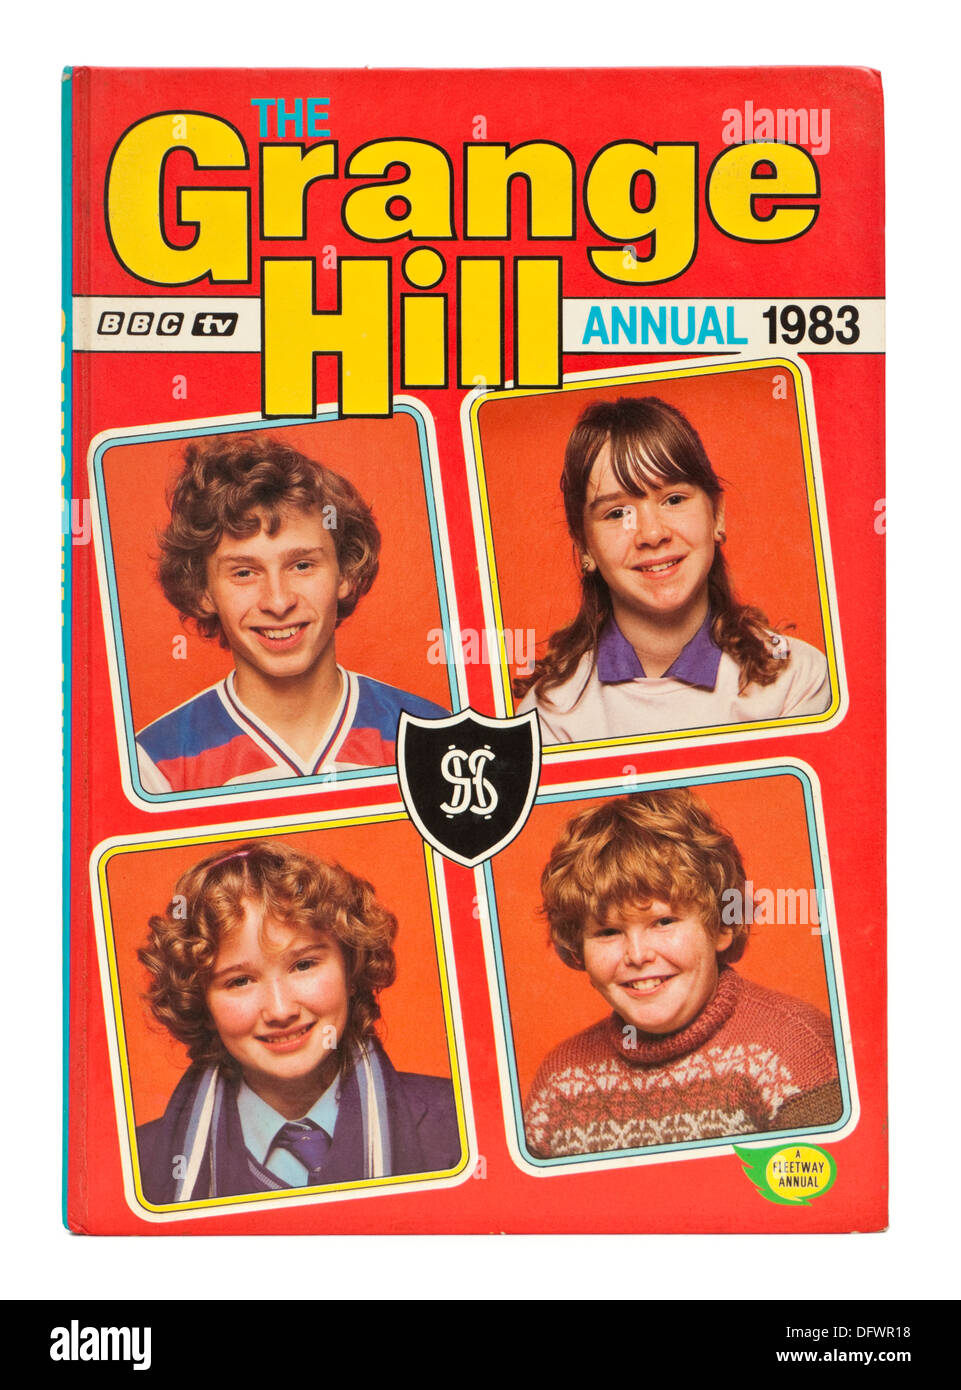 """Vintage 1983 """"Grange Hill"""" annual, featuring a young Susan Tully (aka Michelle Fowler in the BBC soap opera EastEnders) Stock Photo"""